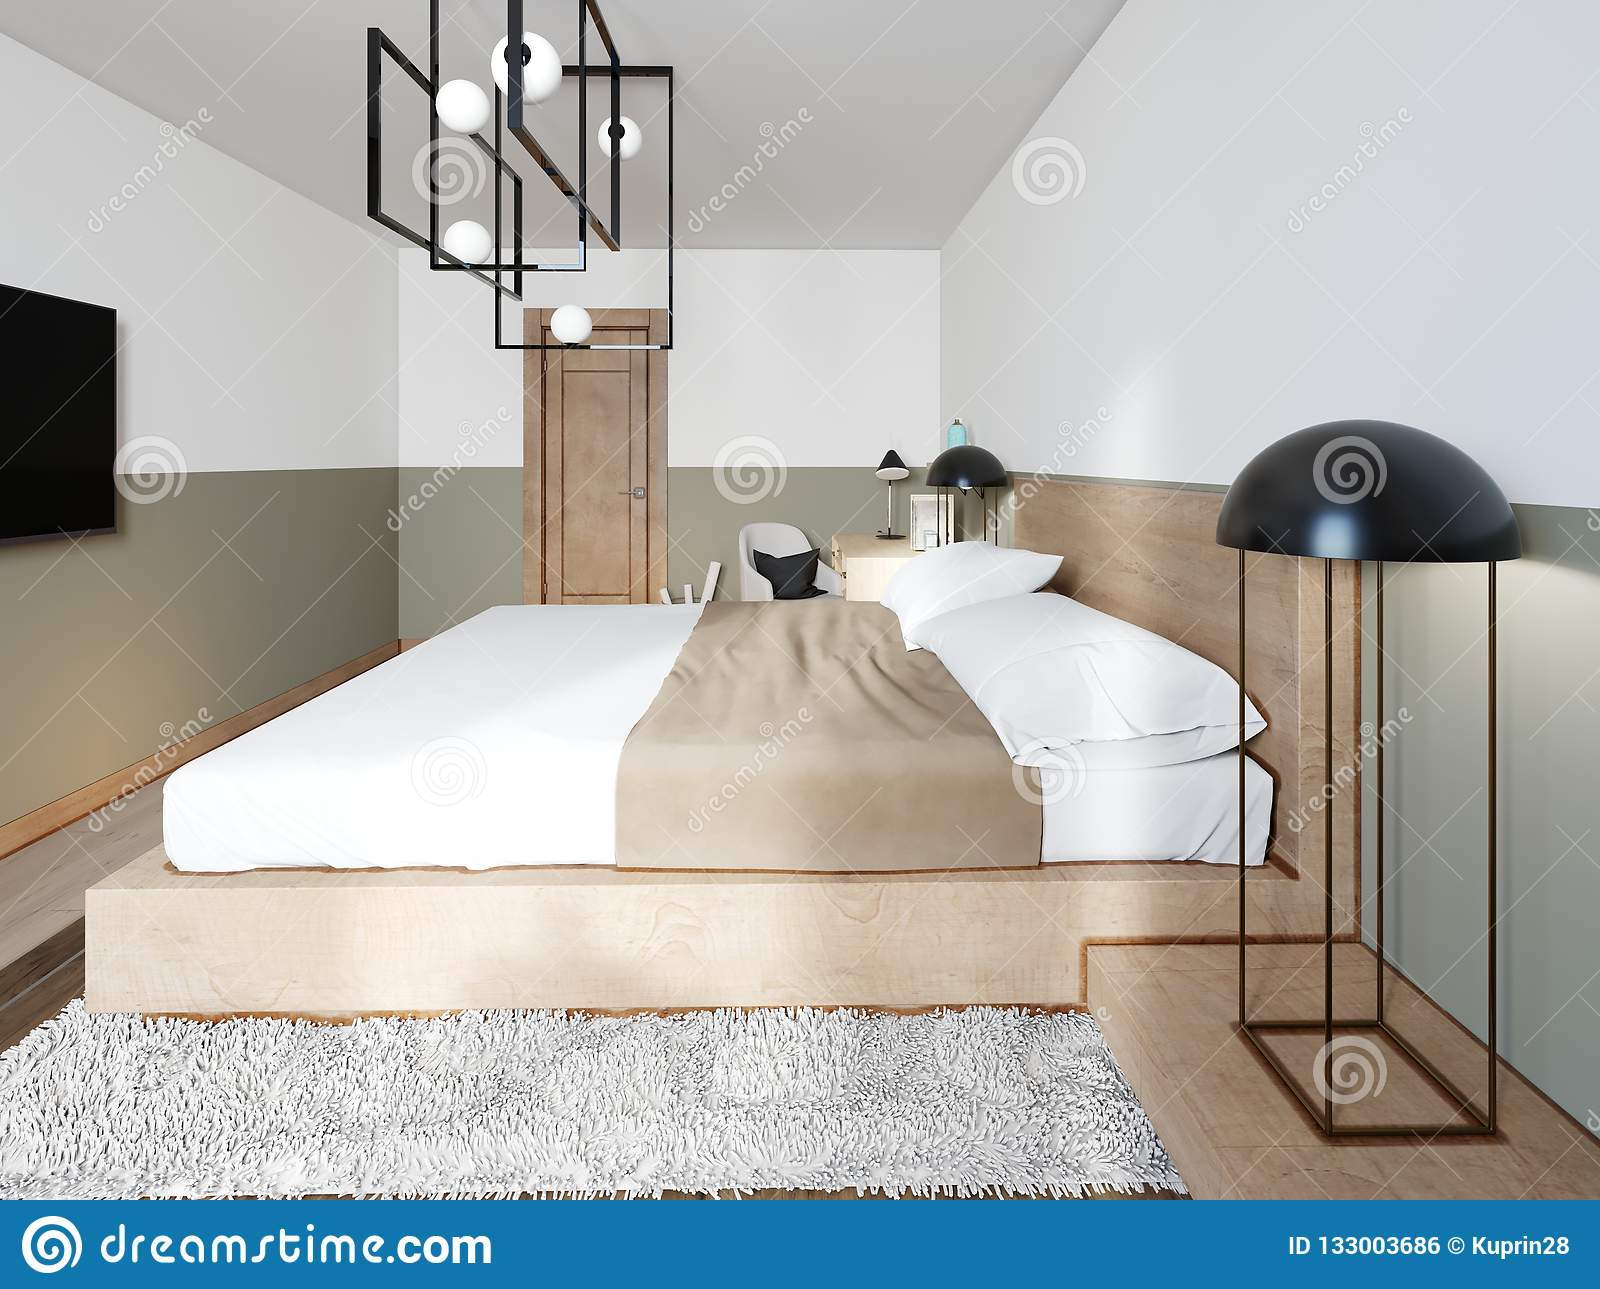 A Modern Wooden Bed On A Two Stage Wooden Catwalk With Lighting A Bedroom In A Loft Style Stock Illustration Illustration Of Hipster Furniture 133003686